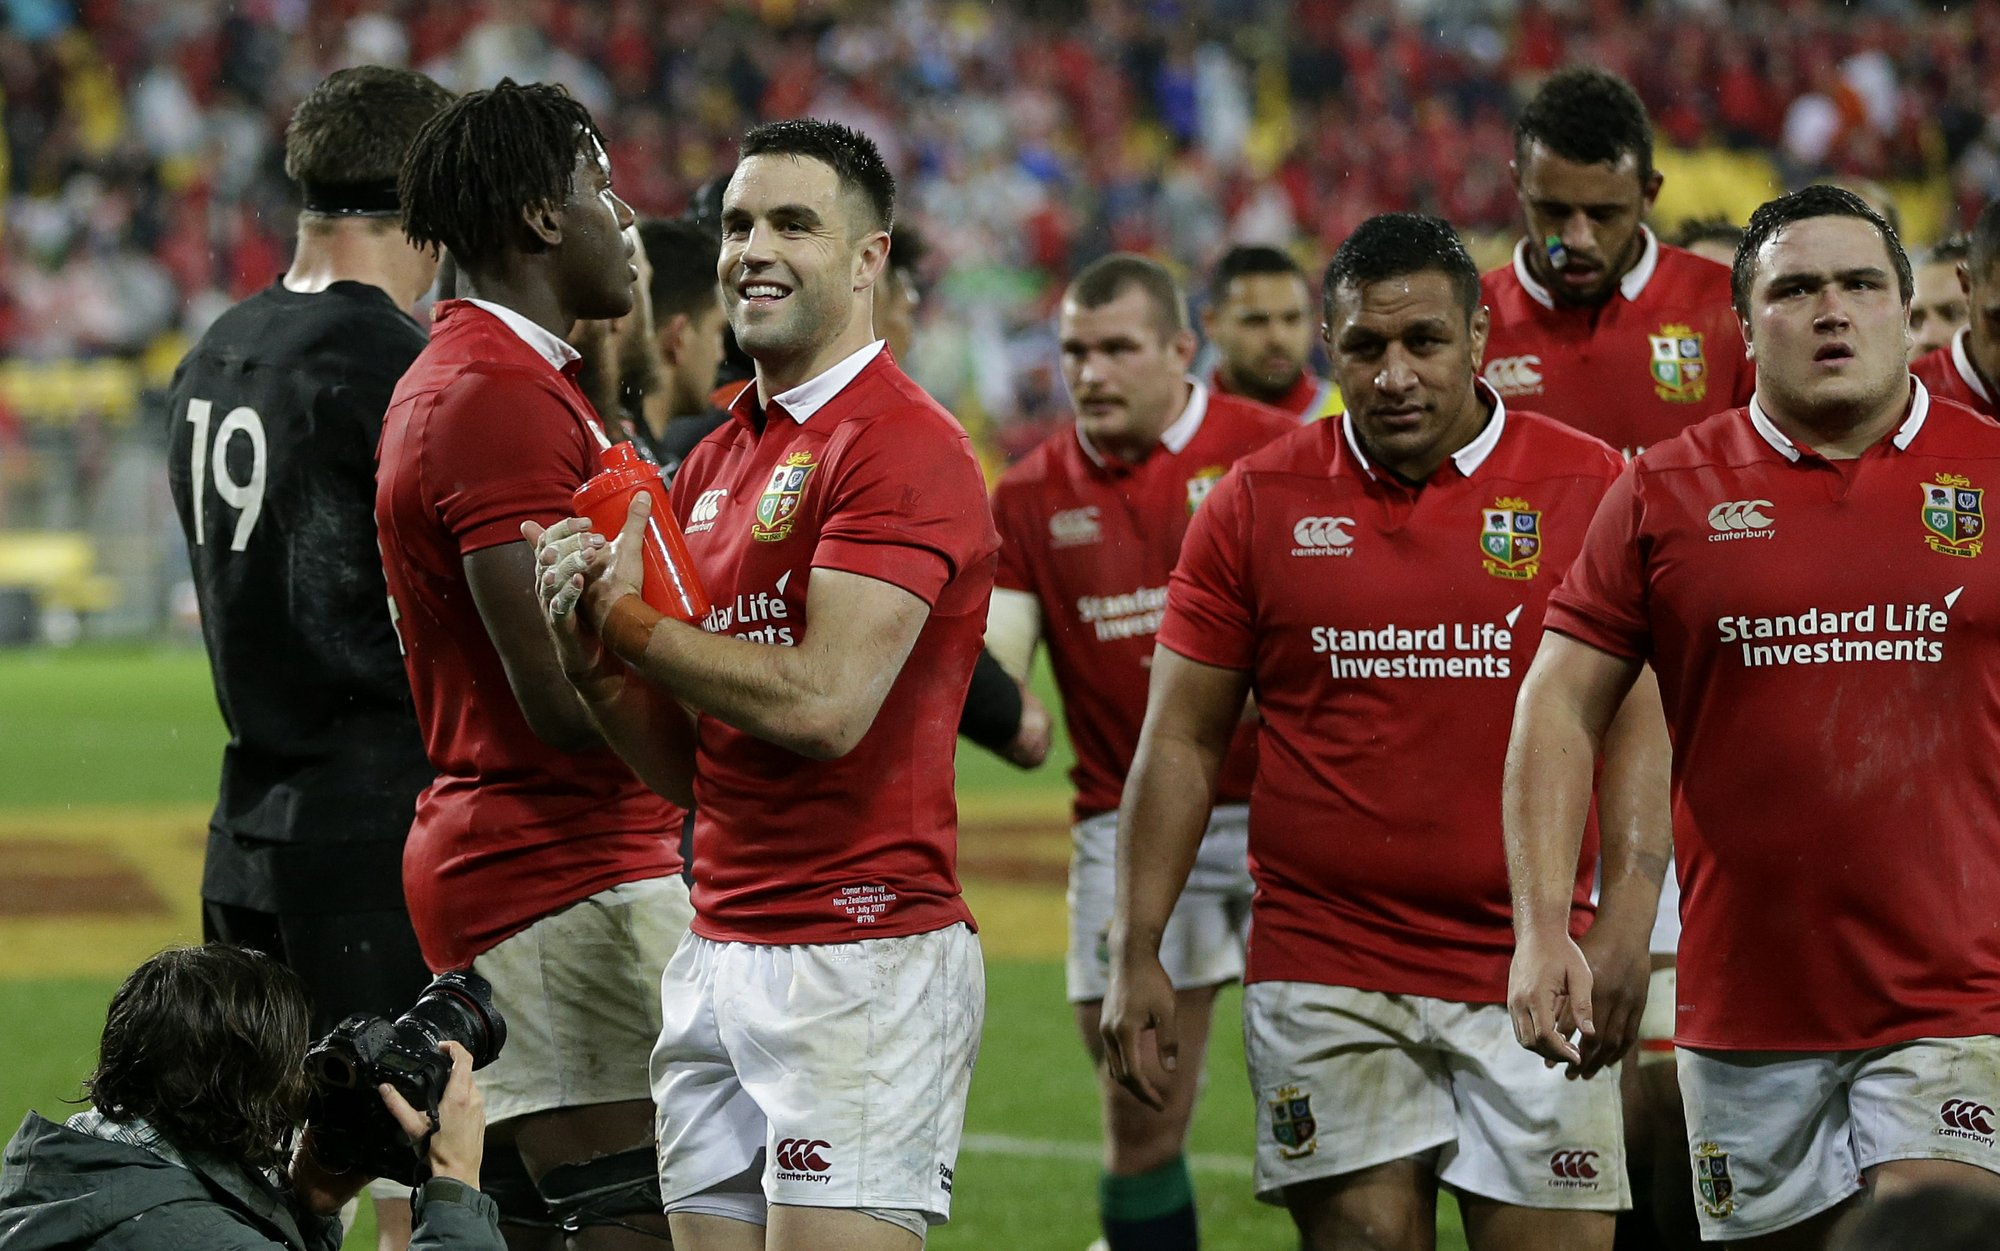 The British And Irish Lions Will Play Two Of Three Tests Against All Blacks At Eden Park On Tour New Zealand In 2017